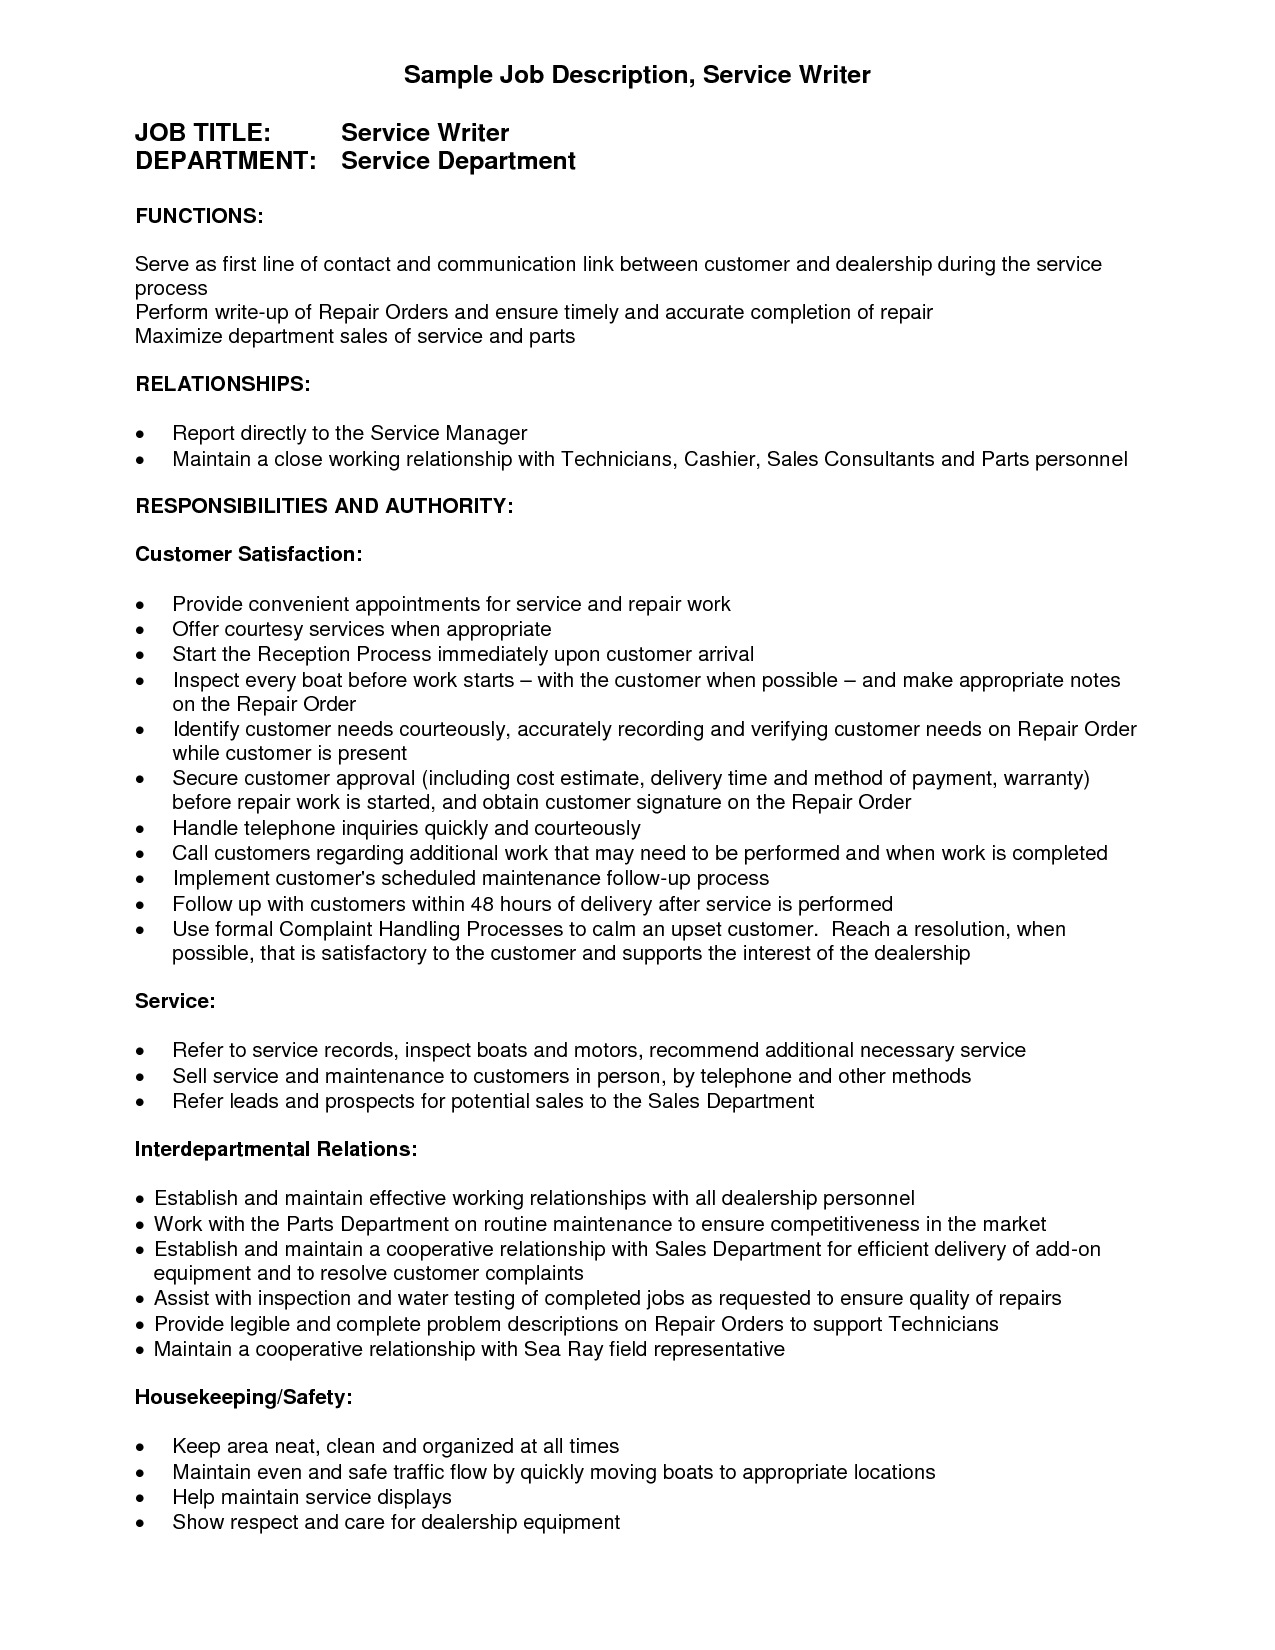 Resume for Letter Of Recommendation Template - Writer Resume Template Financial Services Resume Template New Hr